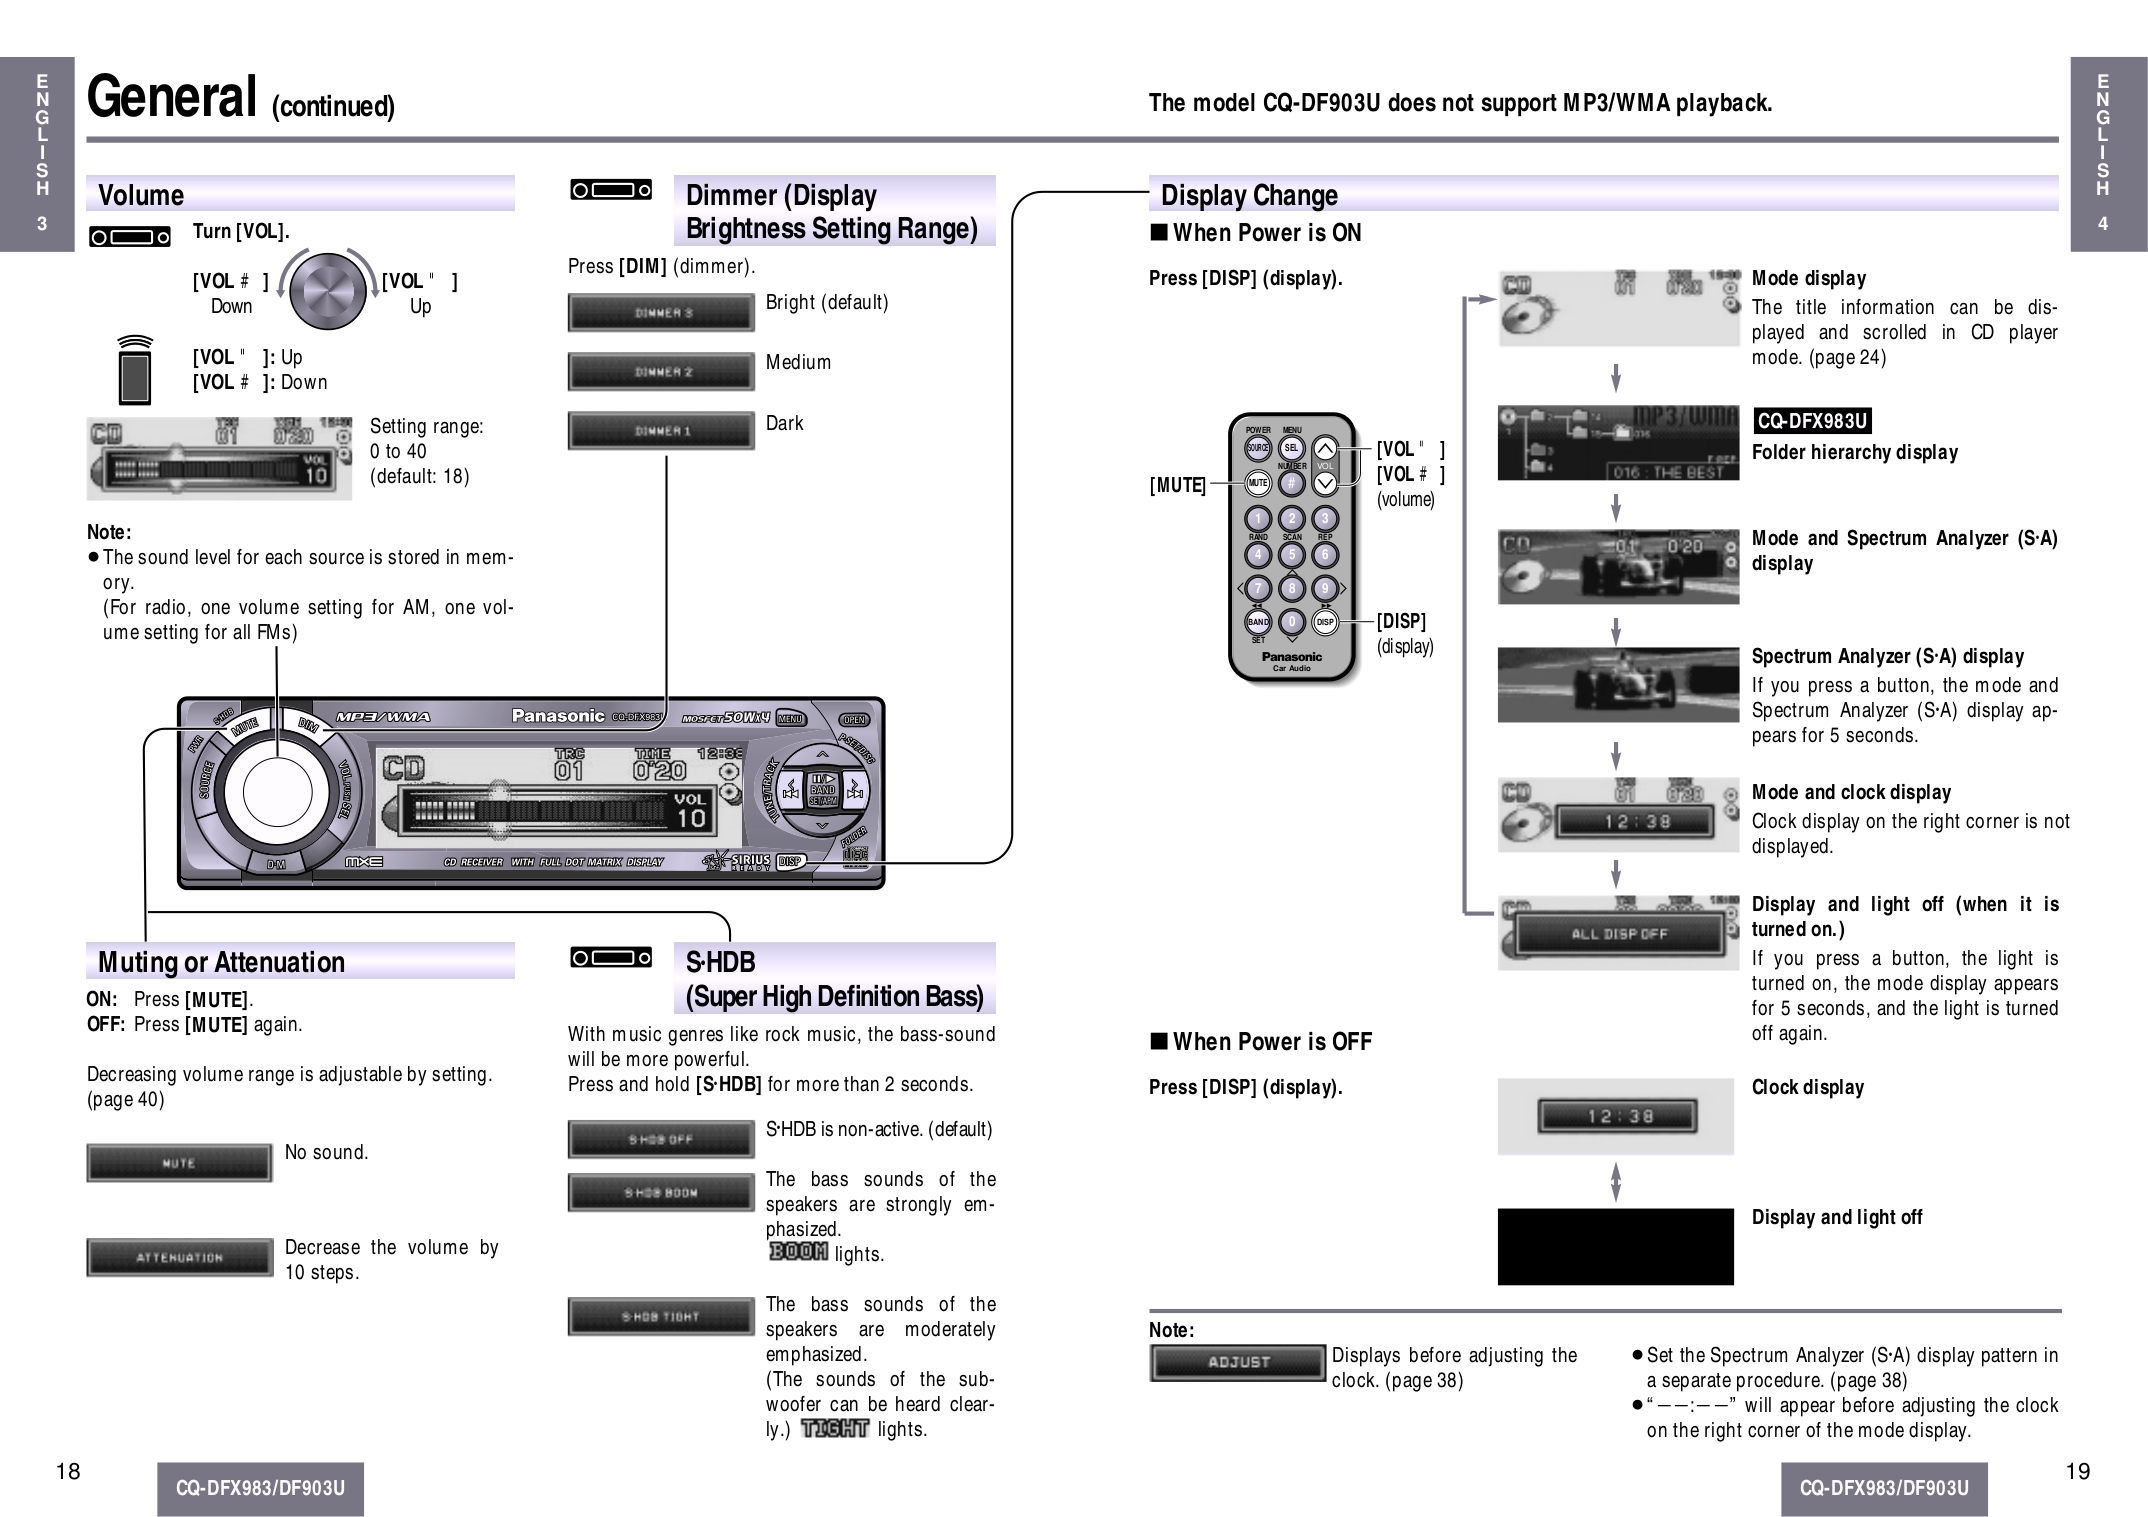 Panasonic Cq Df903U Wiring Diagram from srv2.umlib.com